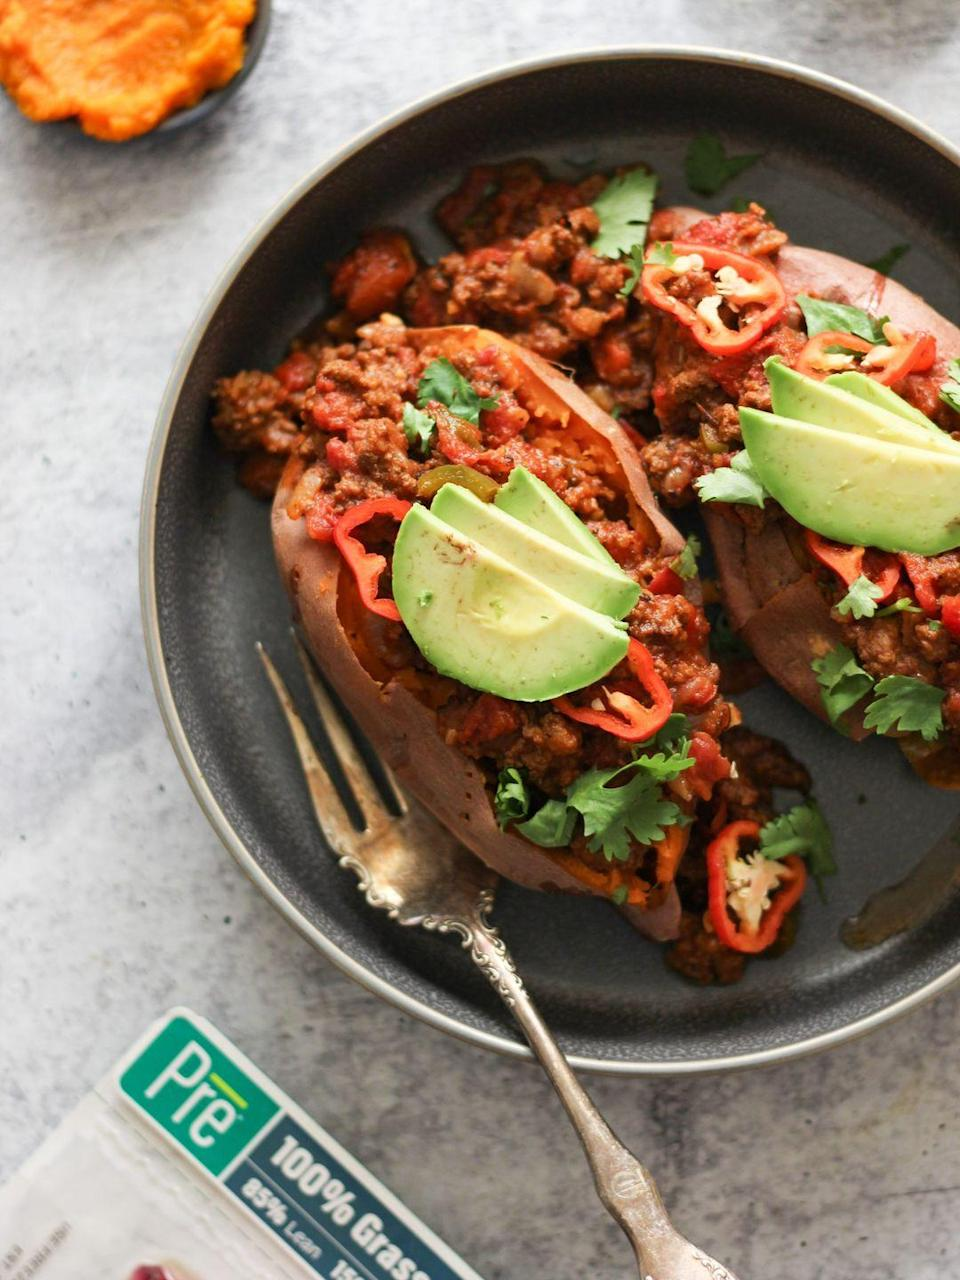 "<p>Pro tip: Serve this cozy pumpkin chili inside a baked sweet potato for an extra-tasty, hearty meal.</p><p><em><a href=""https://cleanfoodiecravings.com/game-day-pumpkin-chili-whole30-keto/"" rel=""nofollow noopener"" target=""_blank"" data-ylk=""slk:Get the recipe from Clean Foodie Cravings »"" class=""link rapid-noclick-resp"">Get the recipe from Clean Foodie Cravings »</a></em></p><p><strong>RELATED: </strong><a href=""https://www.goodhousekeeping.com/food-recipes/g657/sweet-potato-recipes/"" rel=""nofollow noopener"" target=""_blank"" data-ylk=""slk:40 Best Sweet Potato Recipes That Are Perfect for Any Fall Occasion"" class=""link rapid-noclick-resp"">40 Best Sweet Potato Recipes That Are Perfect for Any Fall Occasion</a><br></p>"